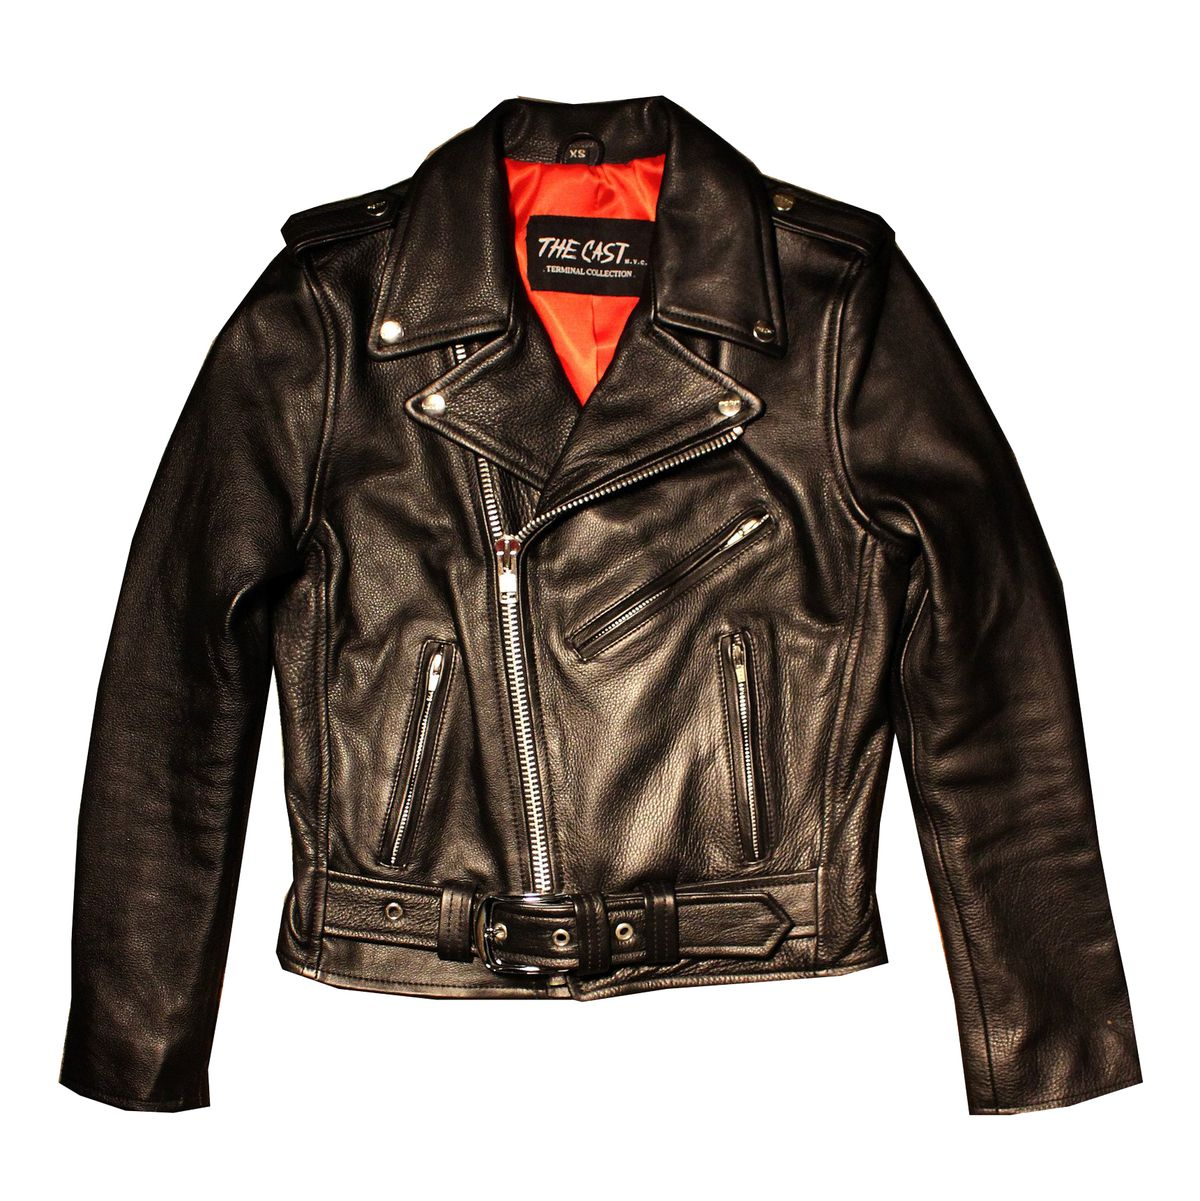 a classic leather jacket